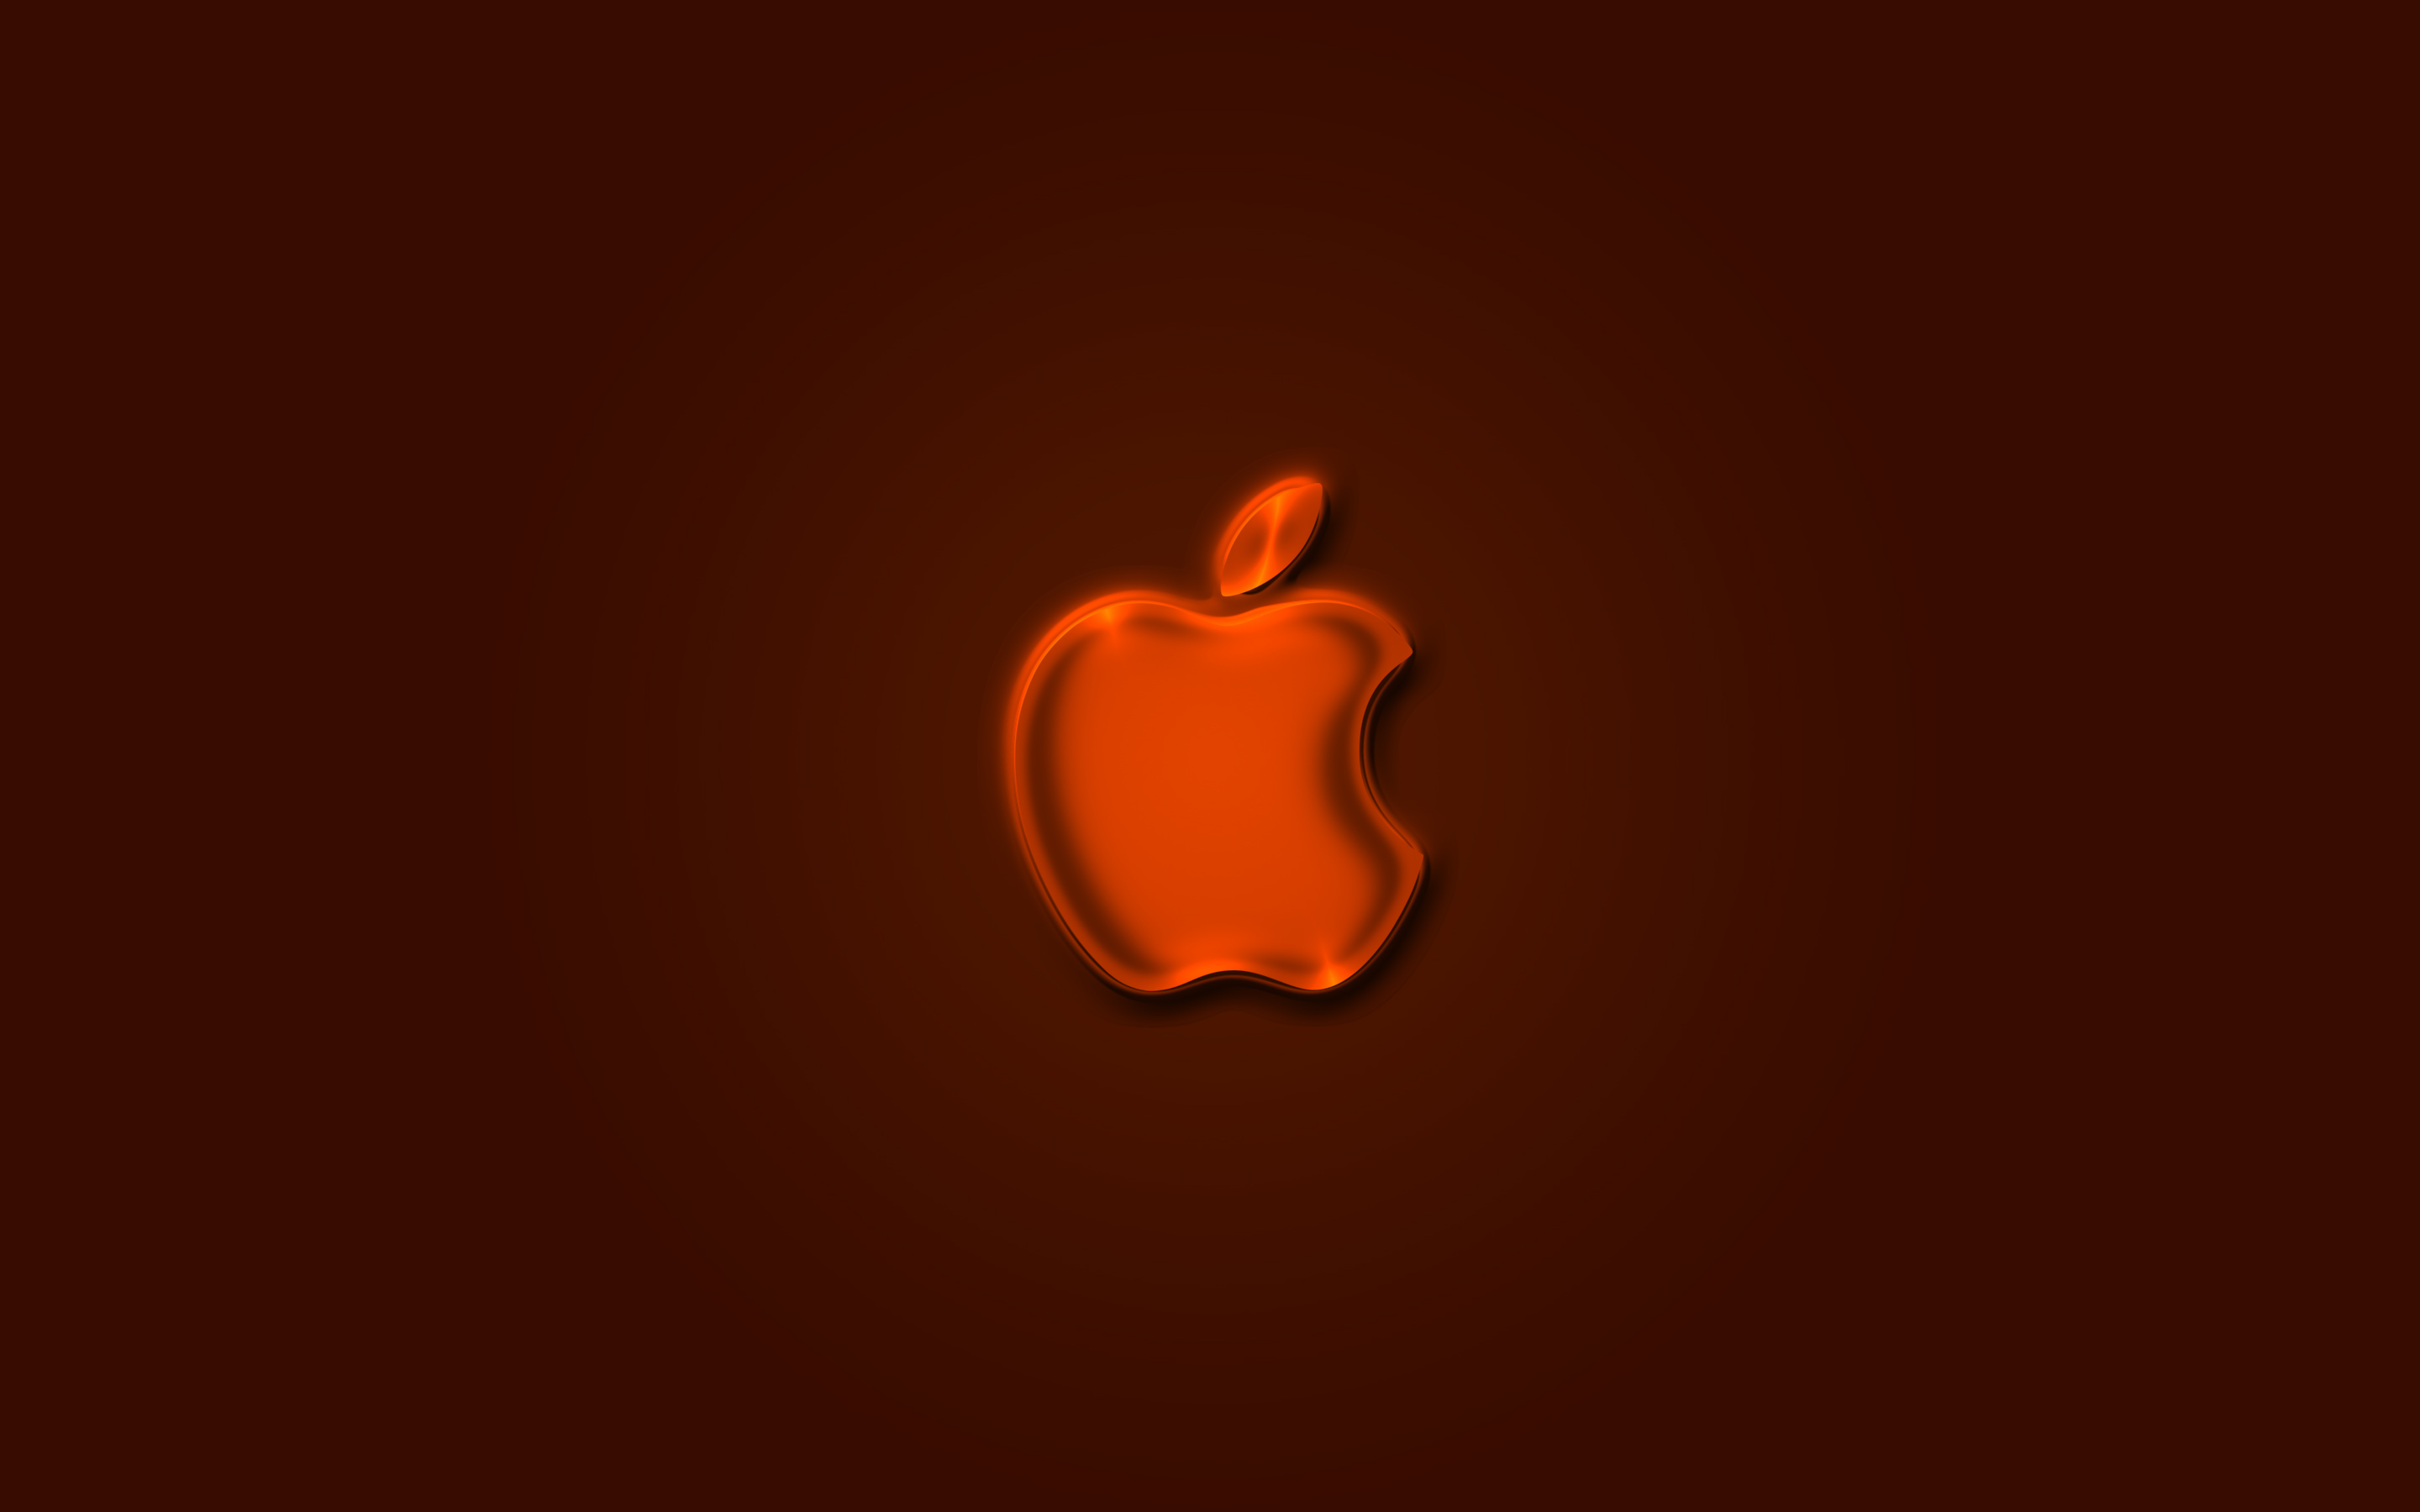 iPhone iPad MacBook Air MacBook Pro iMac Apple Logo Wallpaper 壁紙 Glow Orange (オレンジ色)